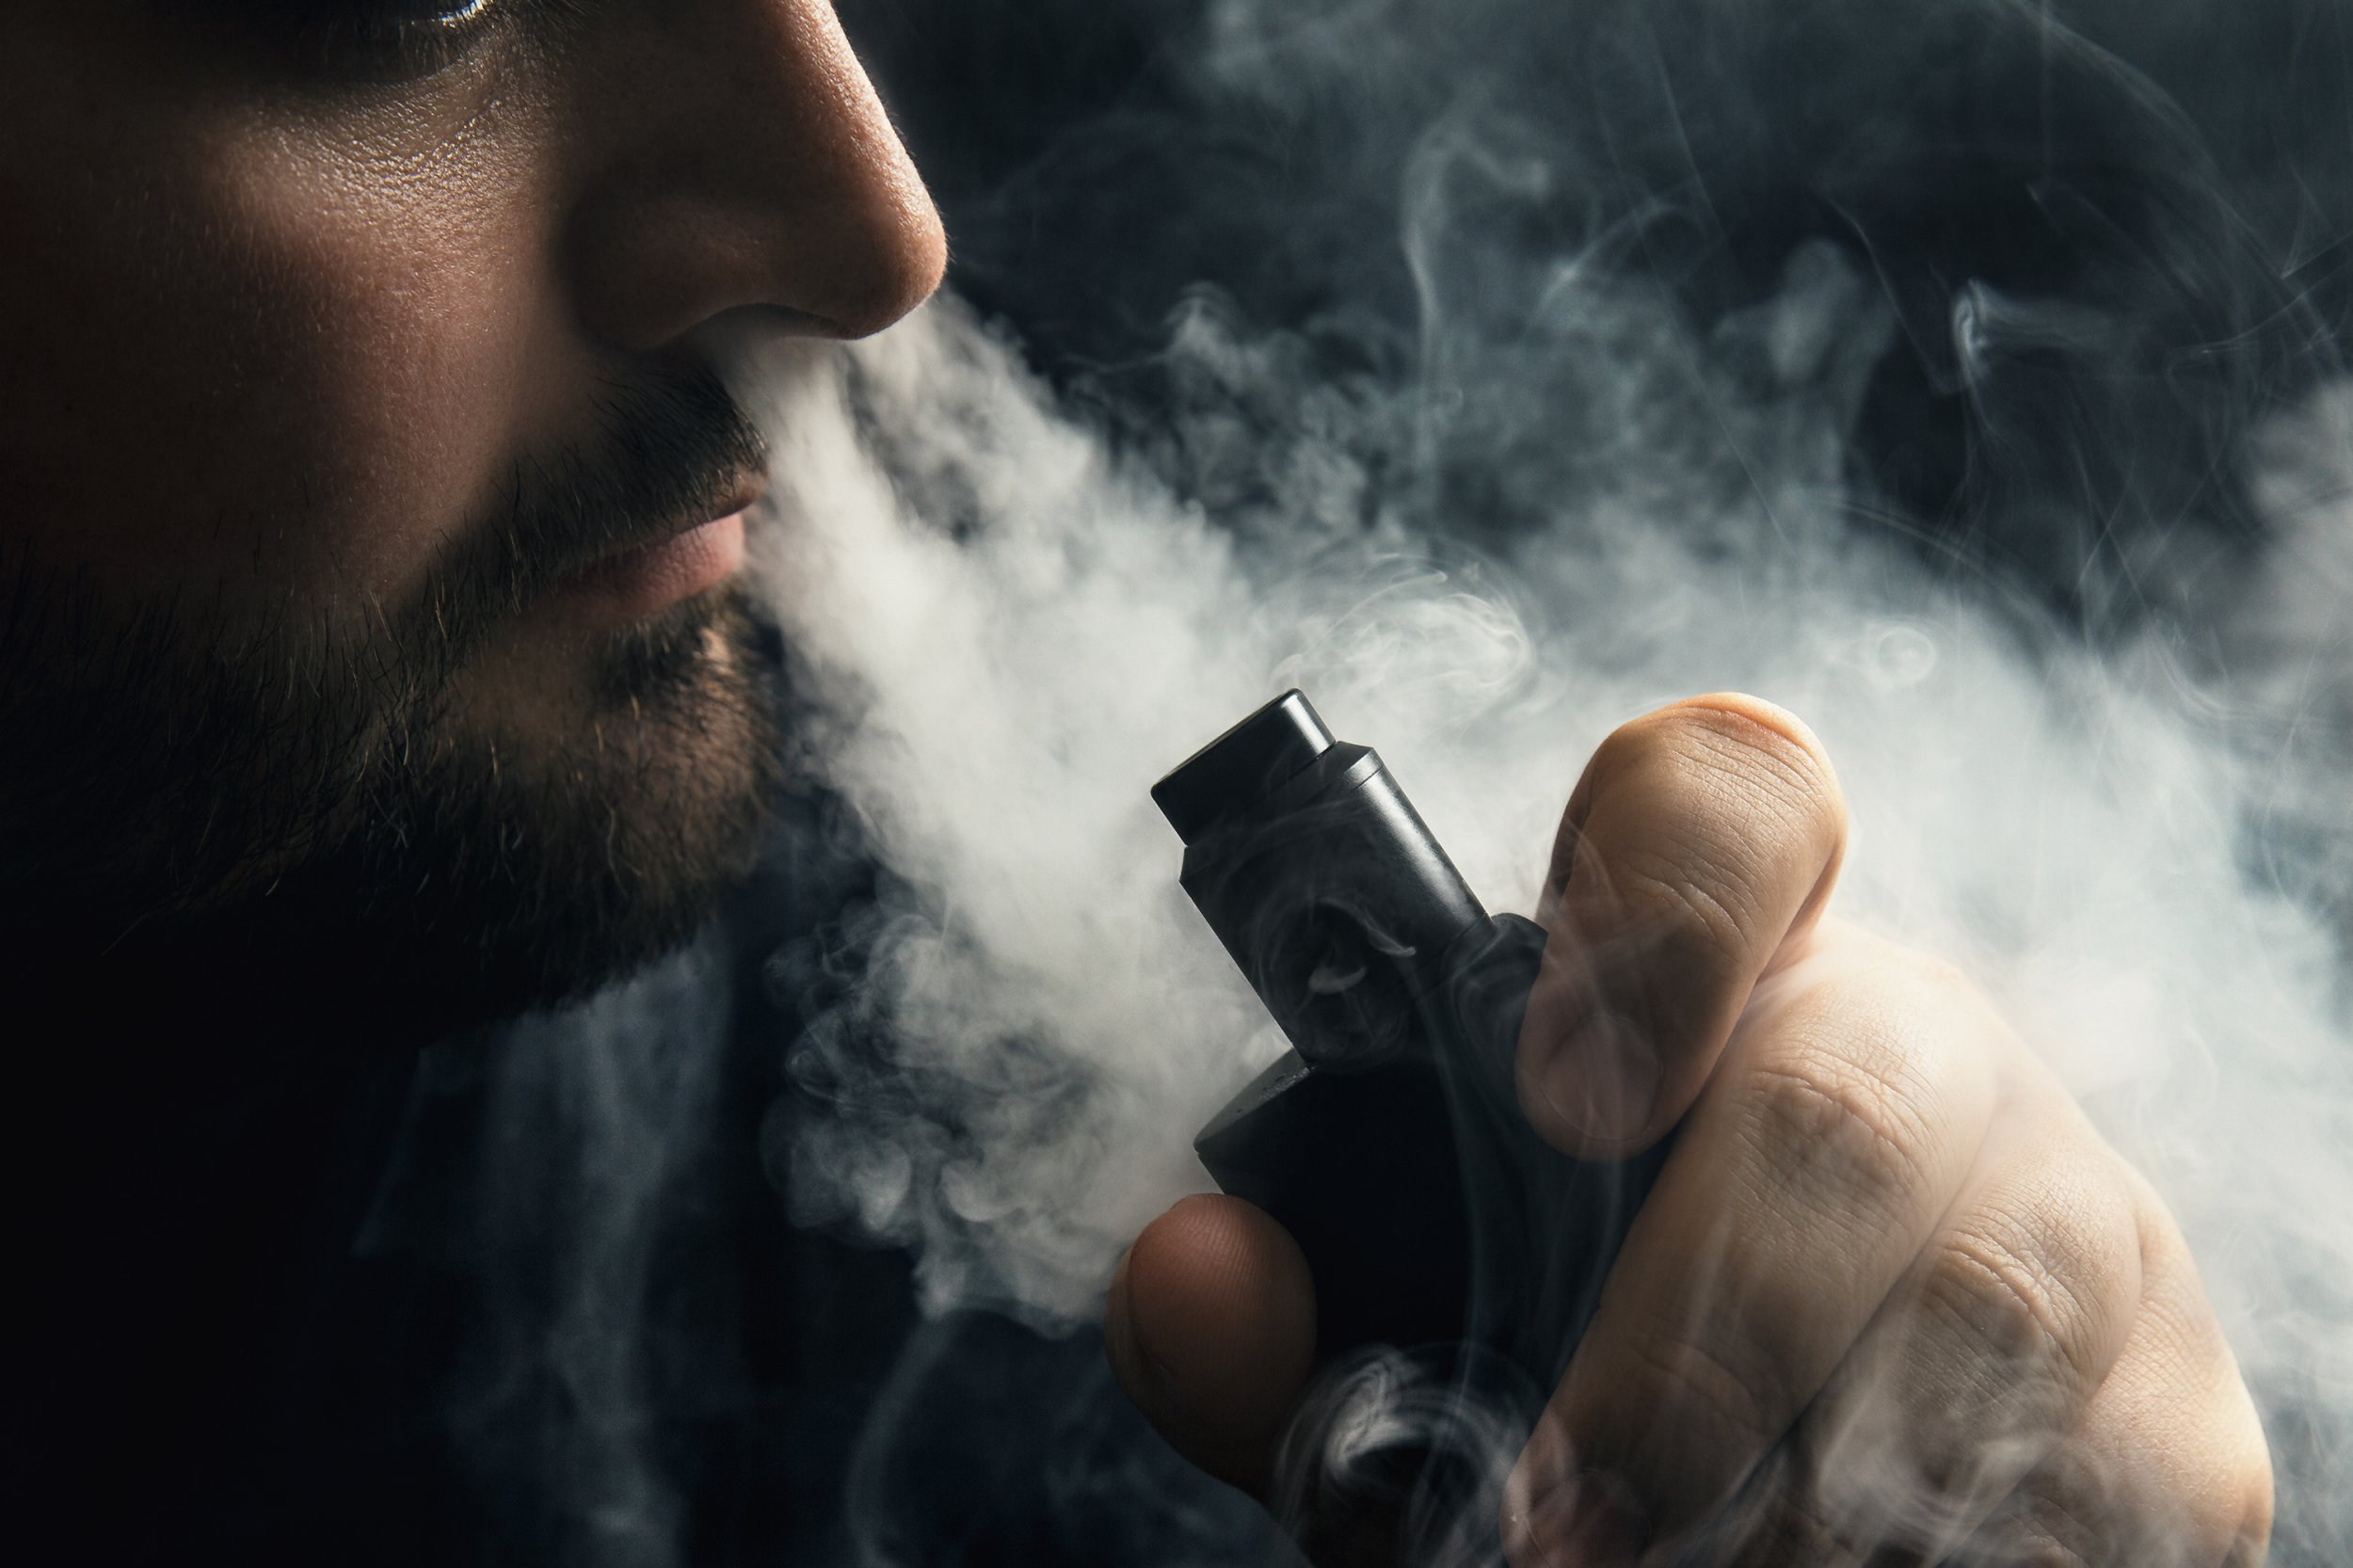 Vaping weed gets you way, way higher than smoking it, study finds